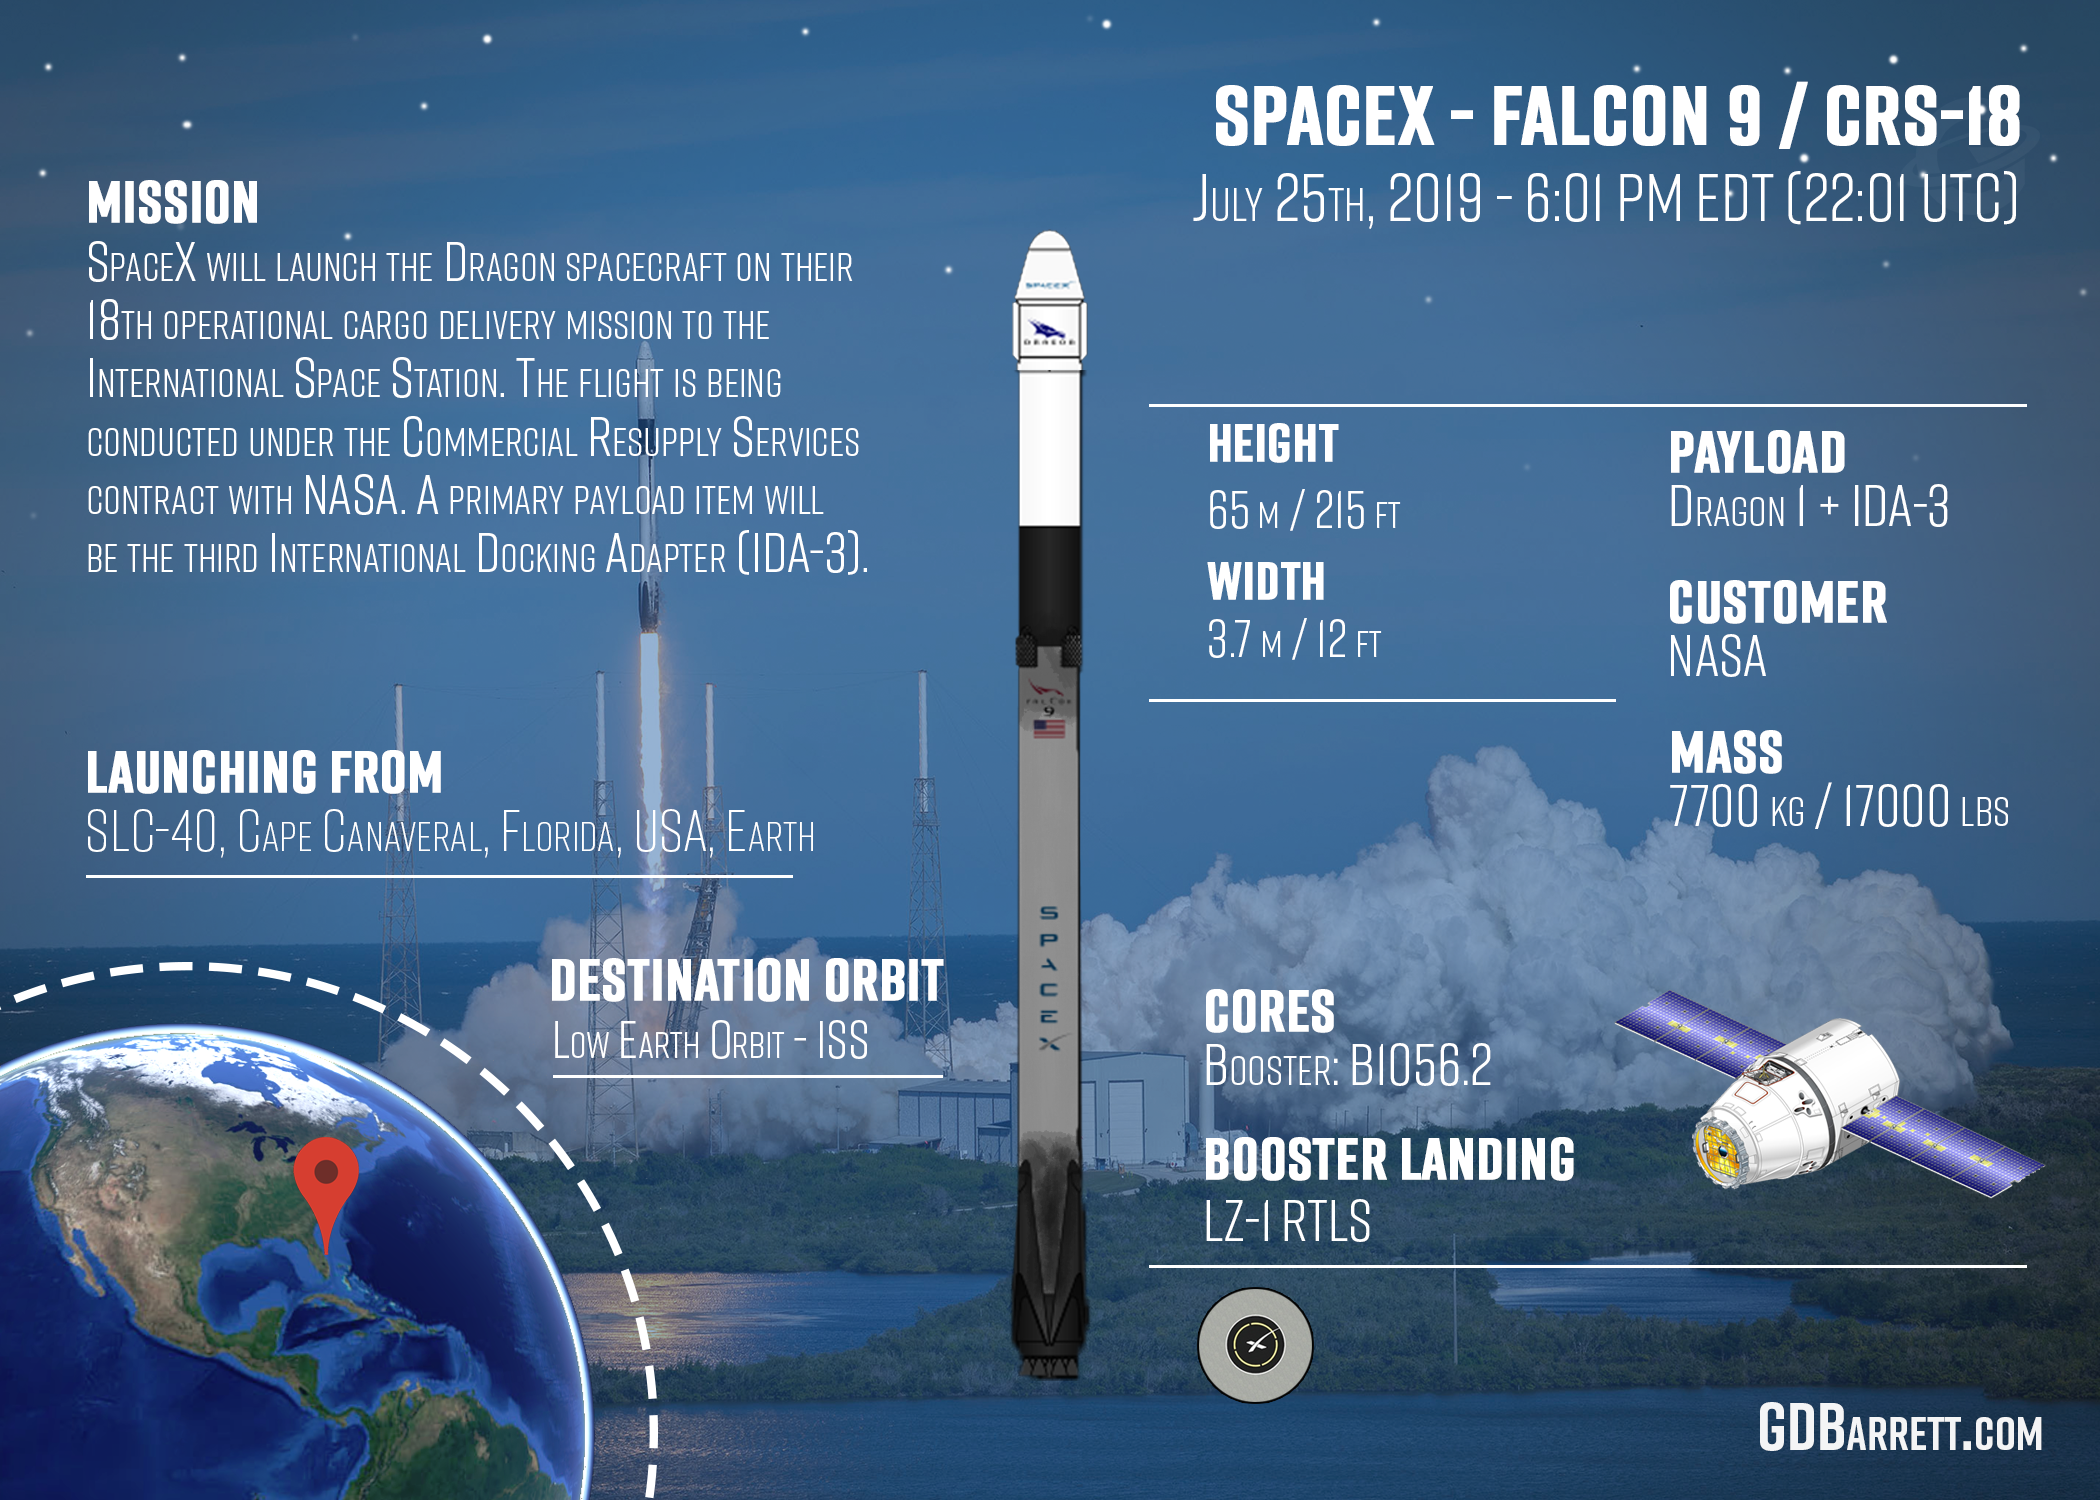 SpaceX Falcon 9 - CRS-18